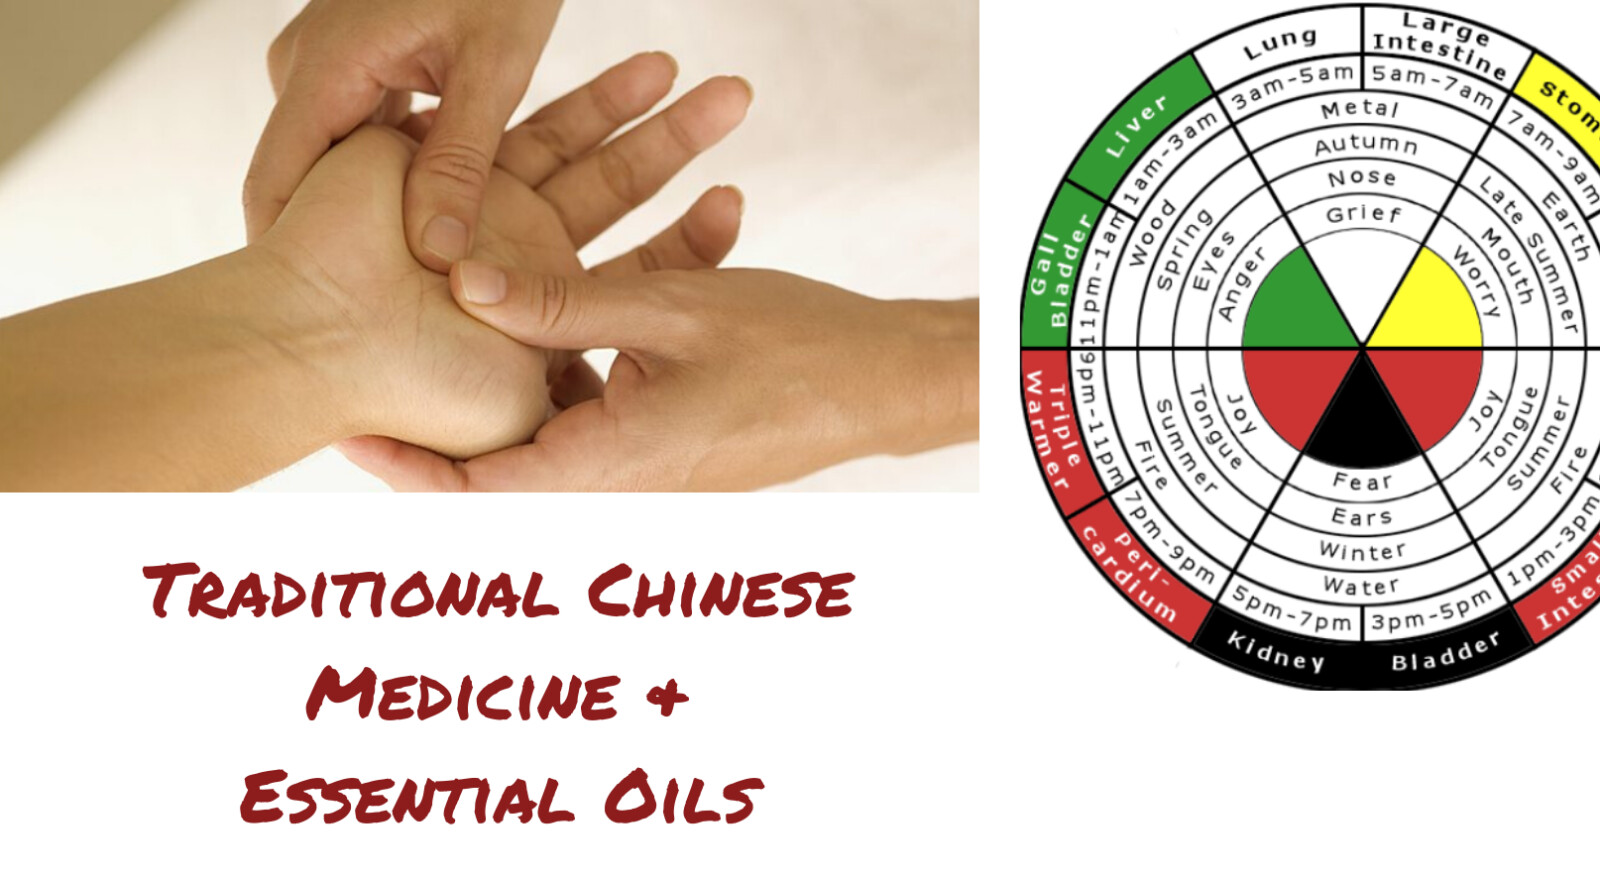 Traditional Chinese Medicine & Essential Oils Webinar